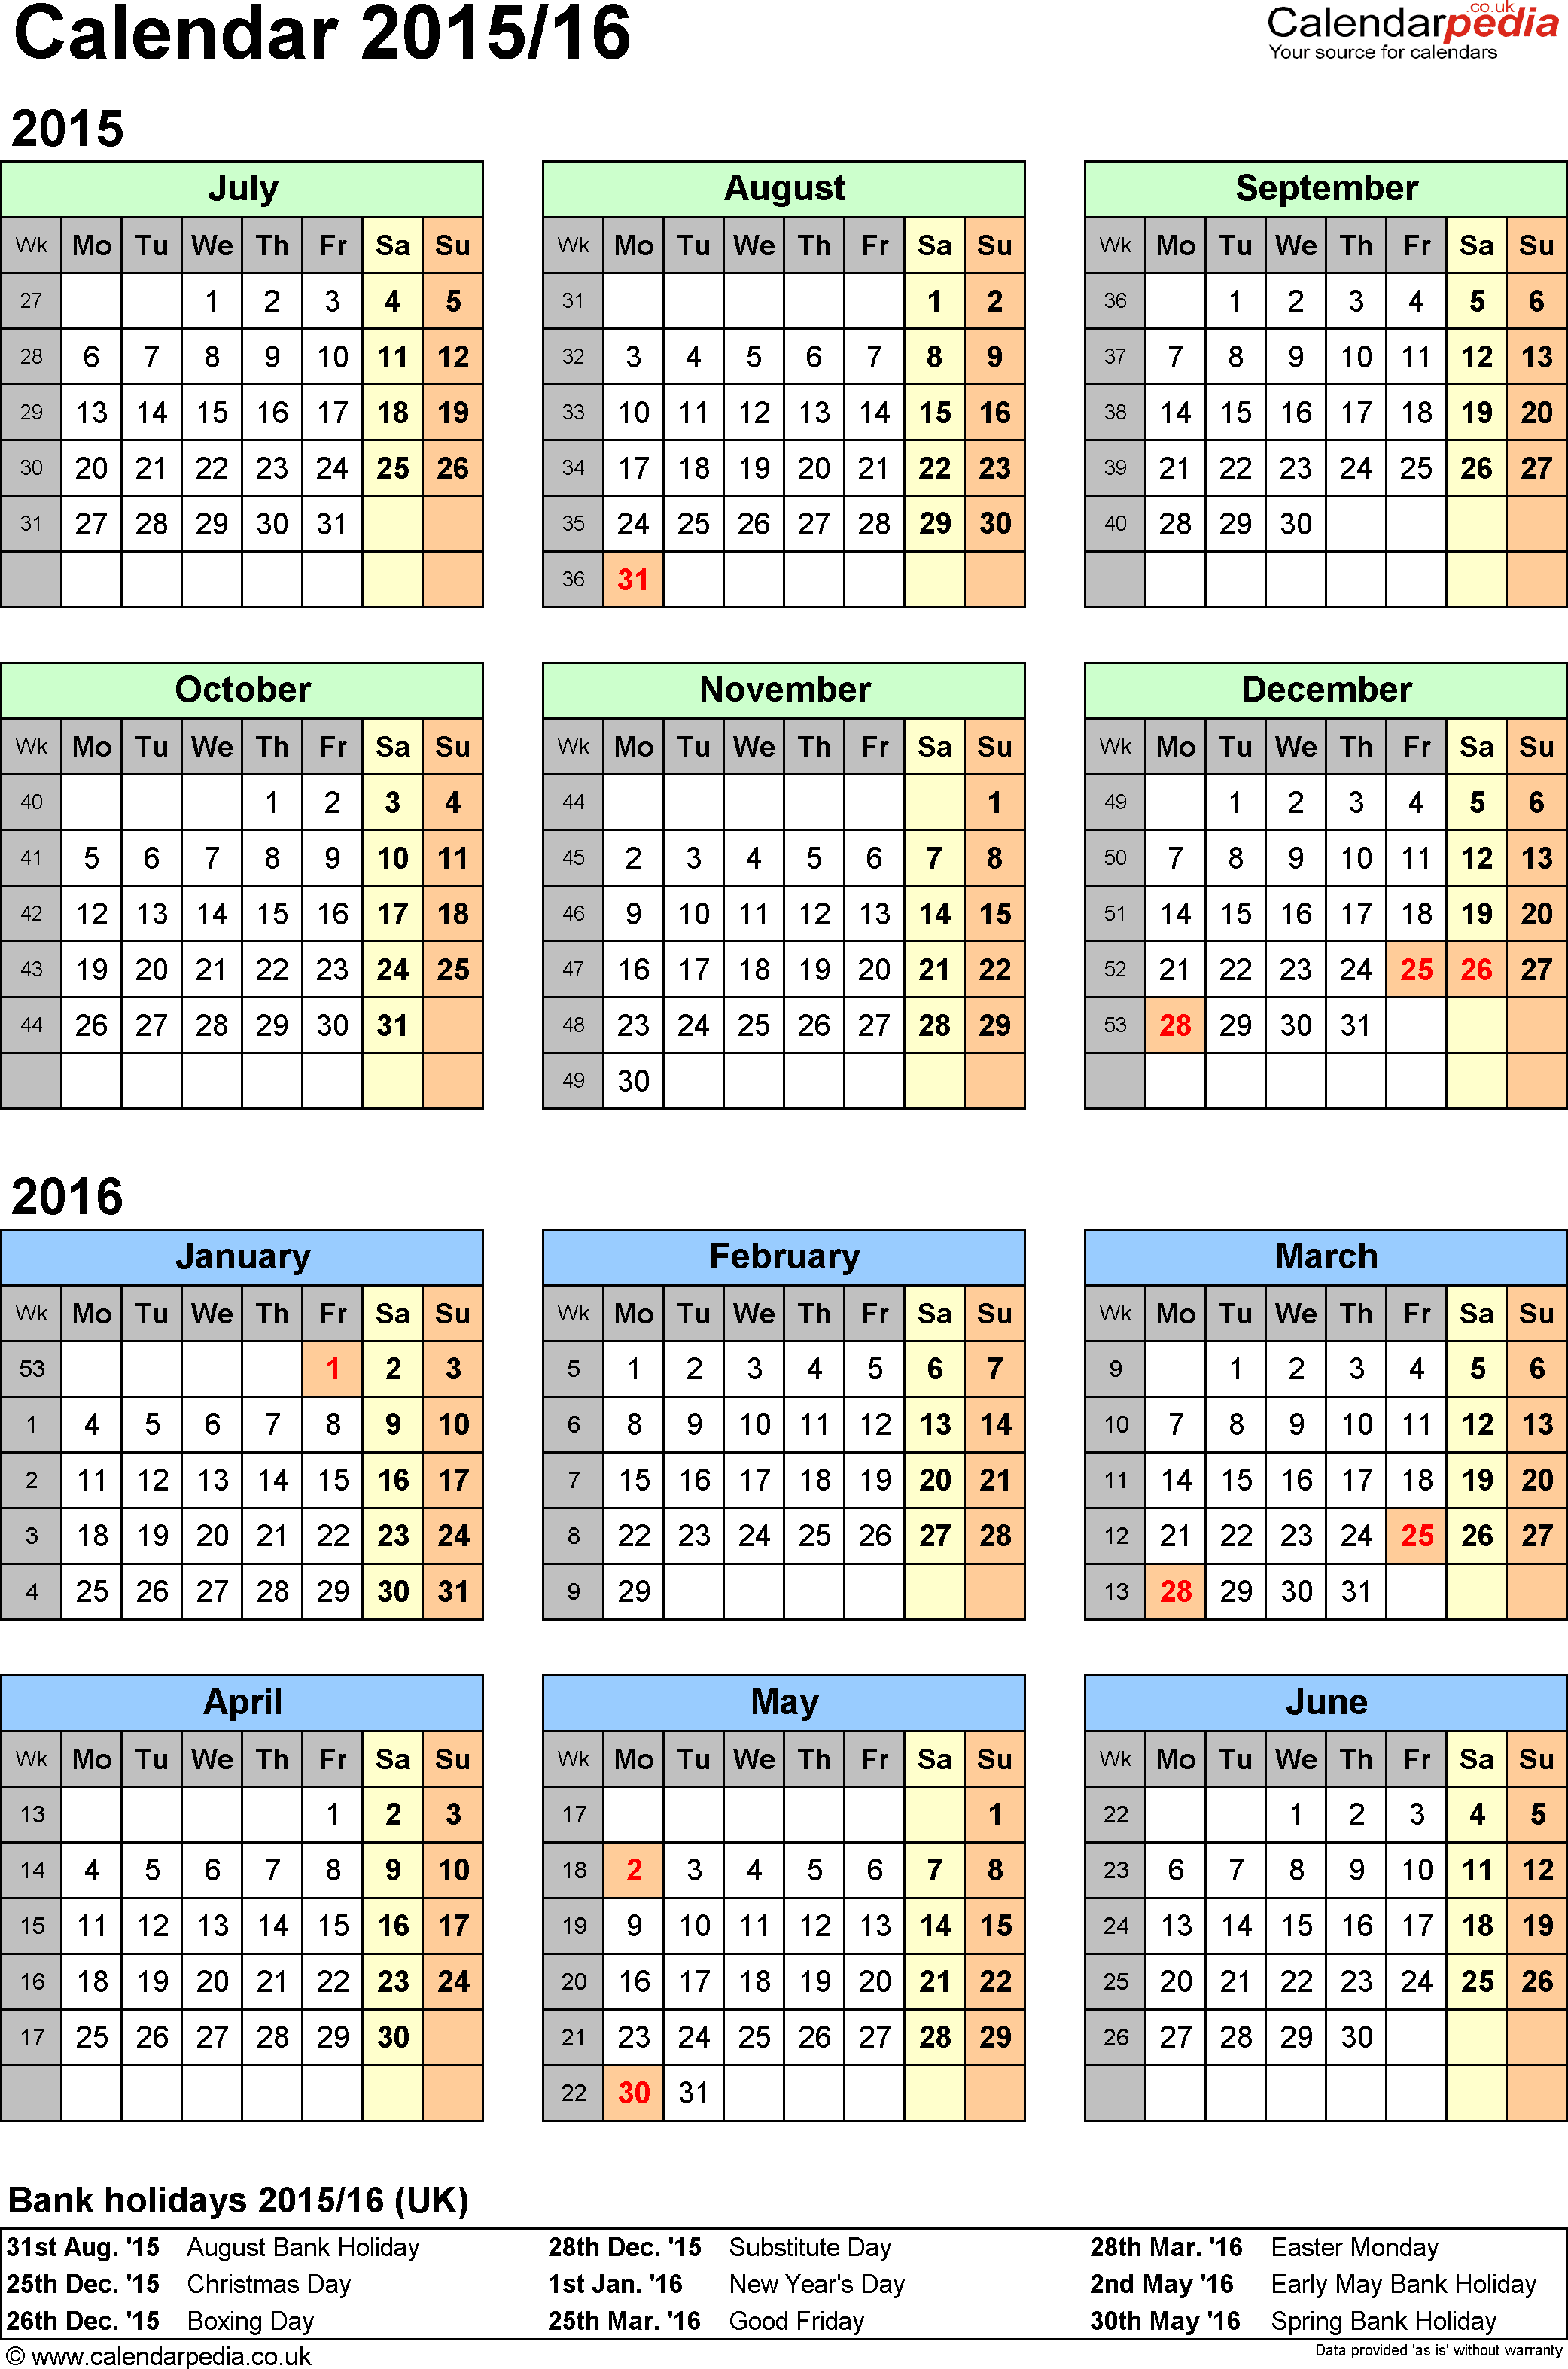 Template 2: Word template for split year calendar 2015/2016 (portrait orientation, 1 page, A4)